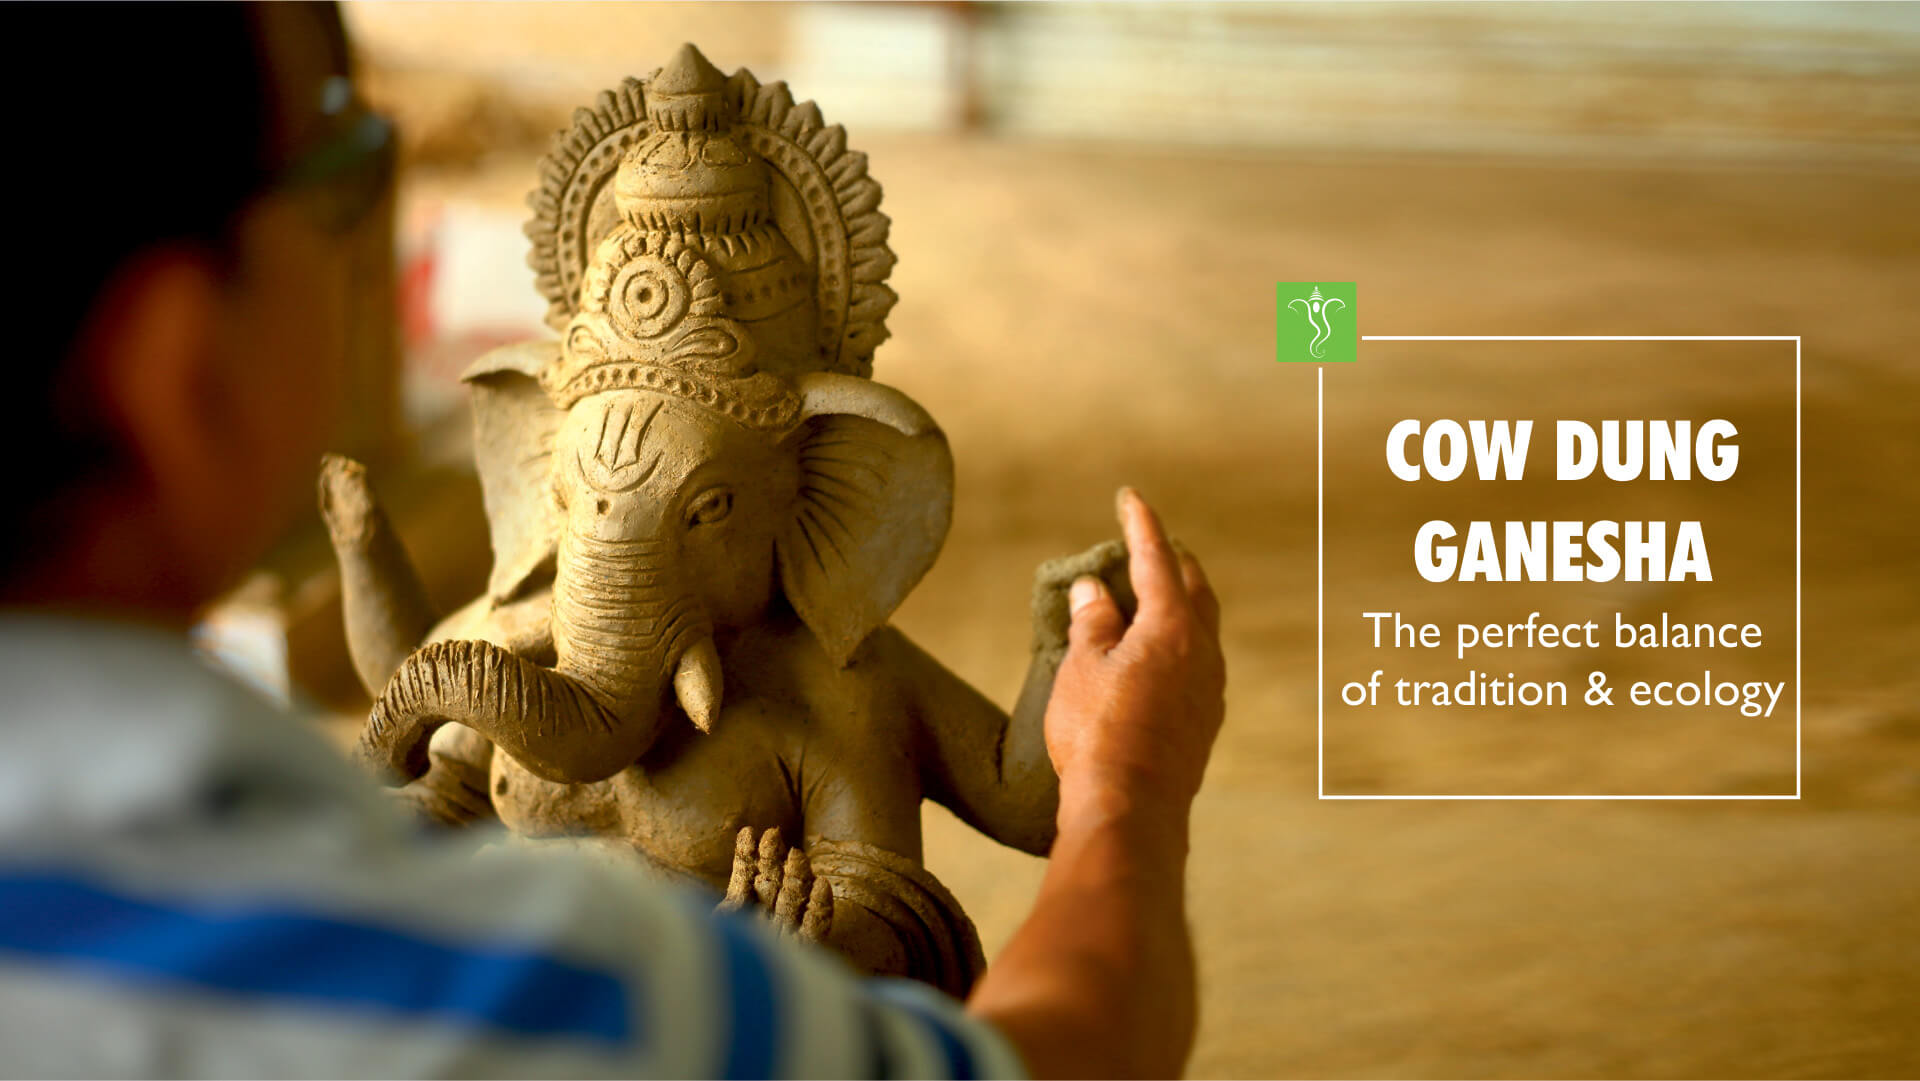 Klimom- Indian Holy cow dung cakes for Ganesh Chaturthi